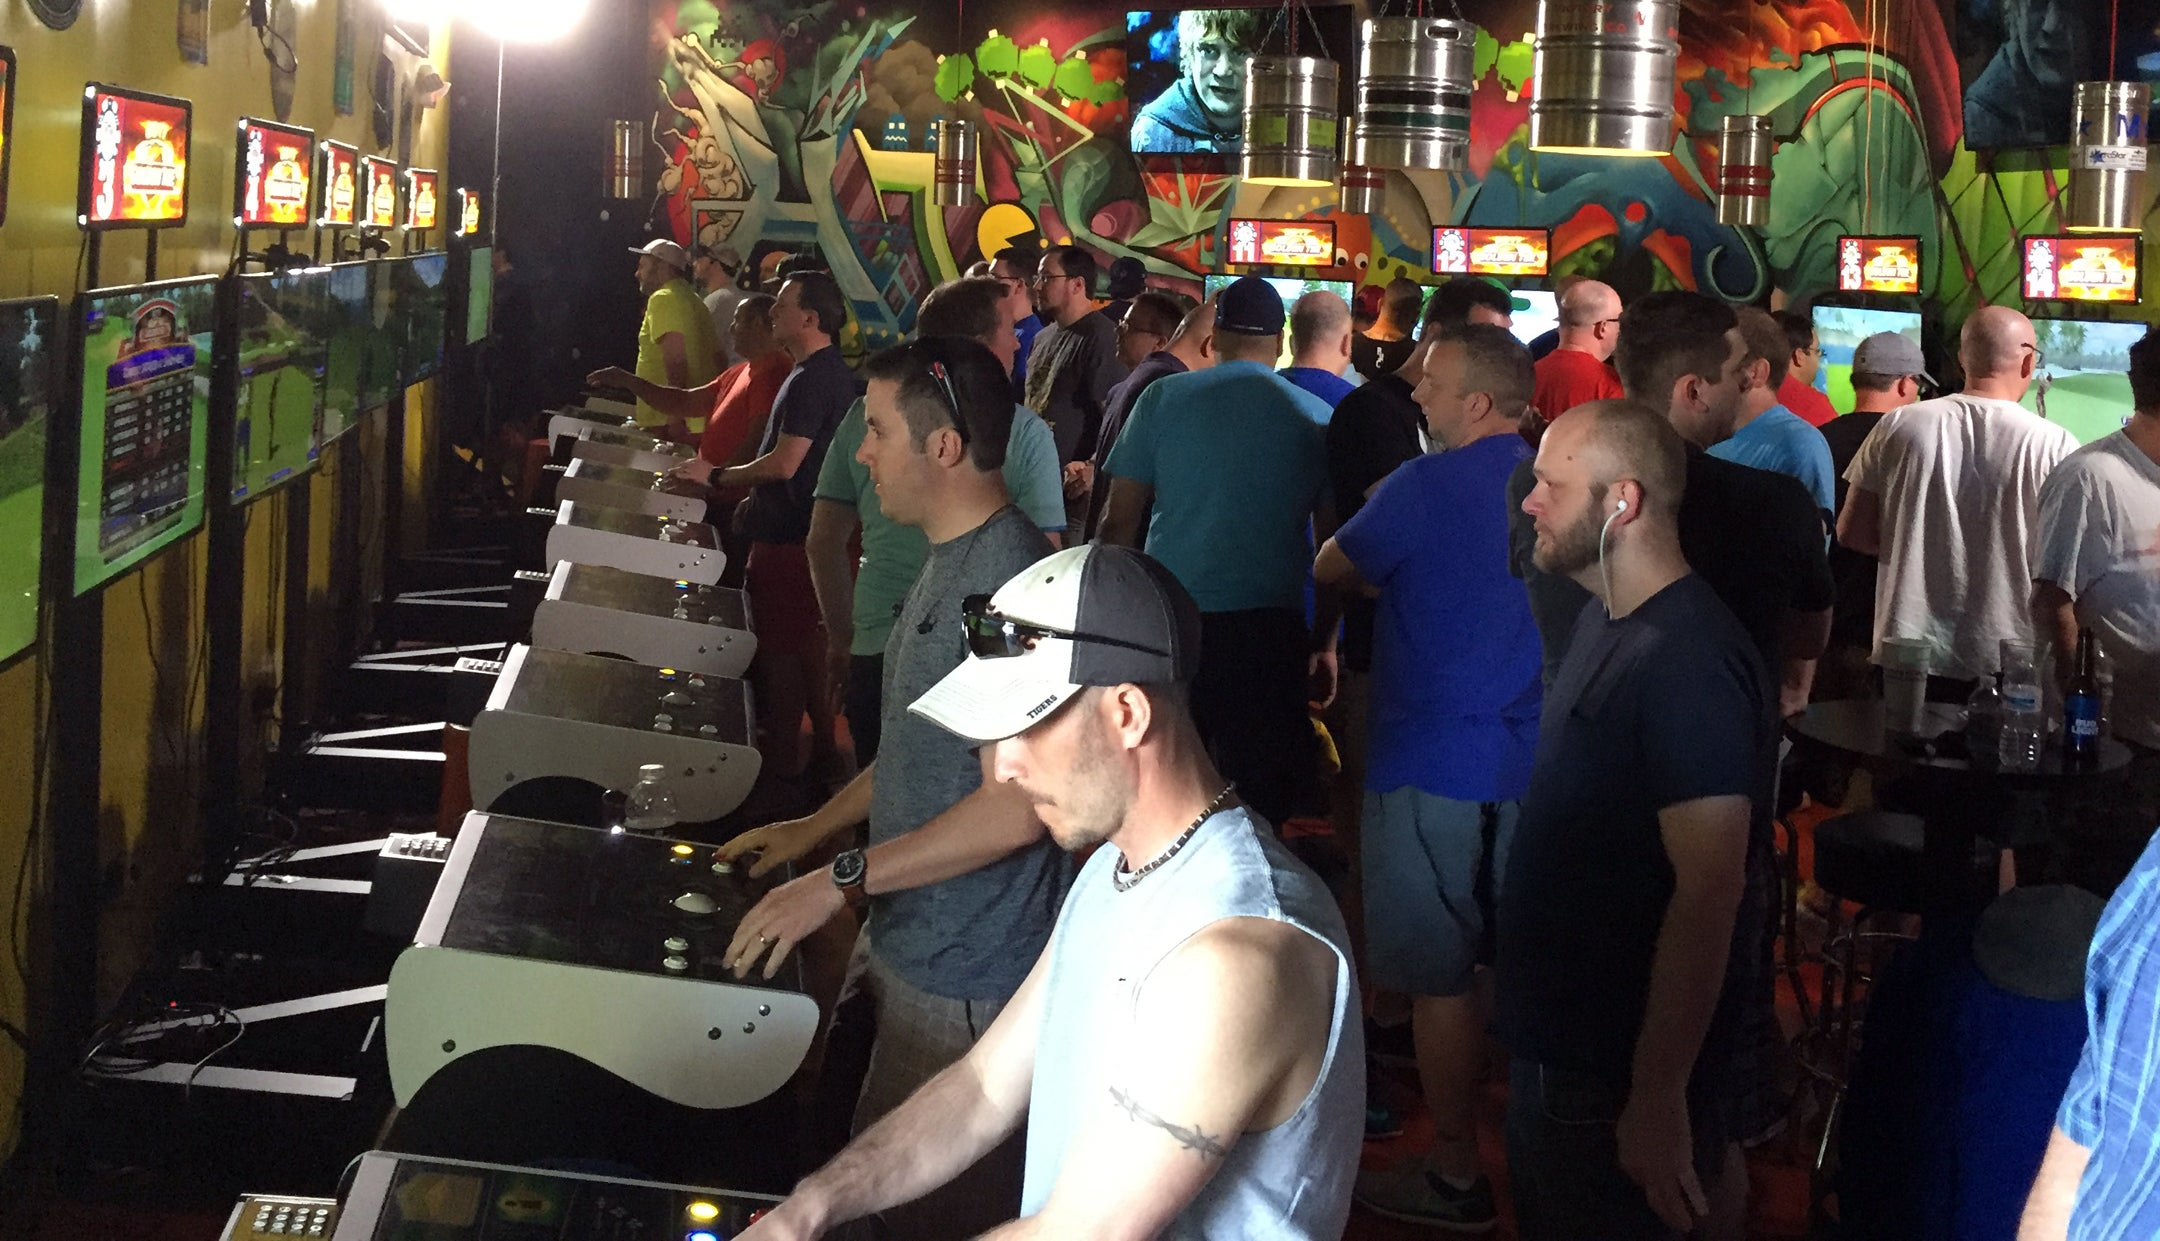 Golden Tee World Champion Claims $13,400 Prize, Good For 234th Place On PGA Tour